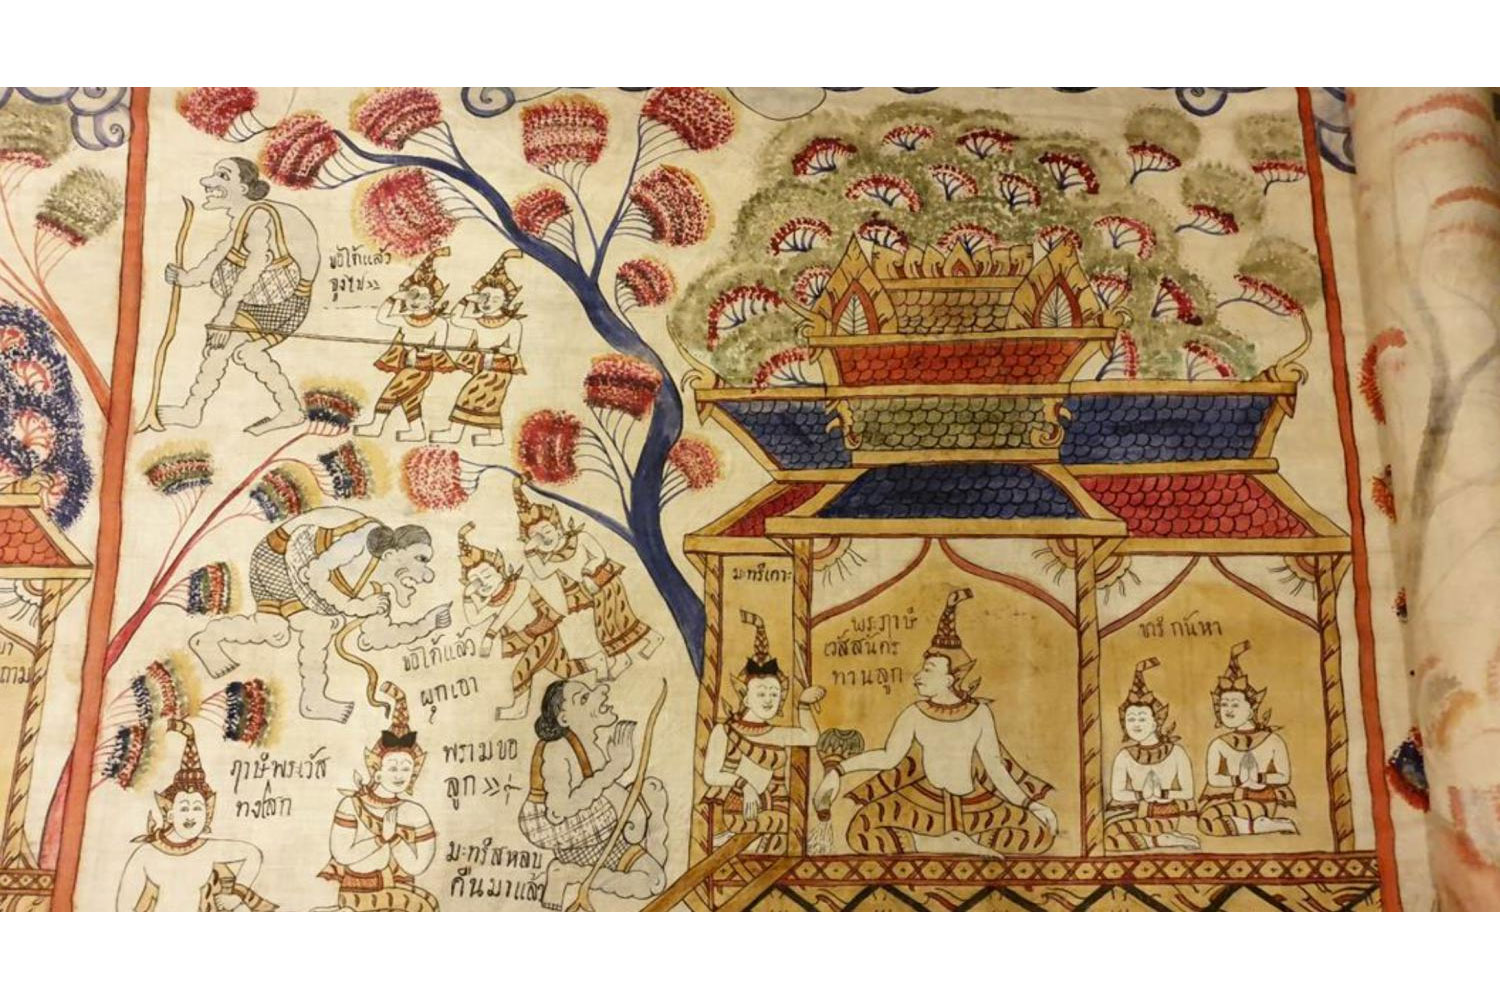 A chance to see rare textiles